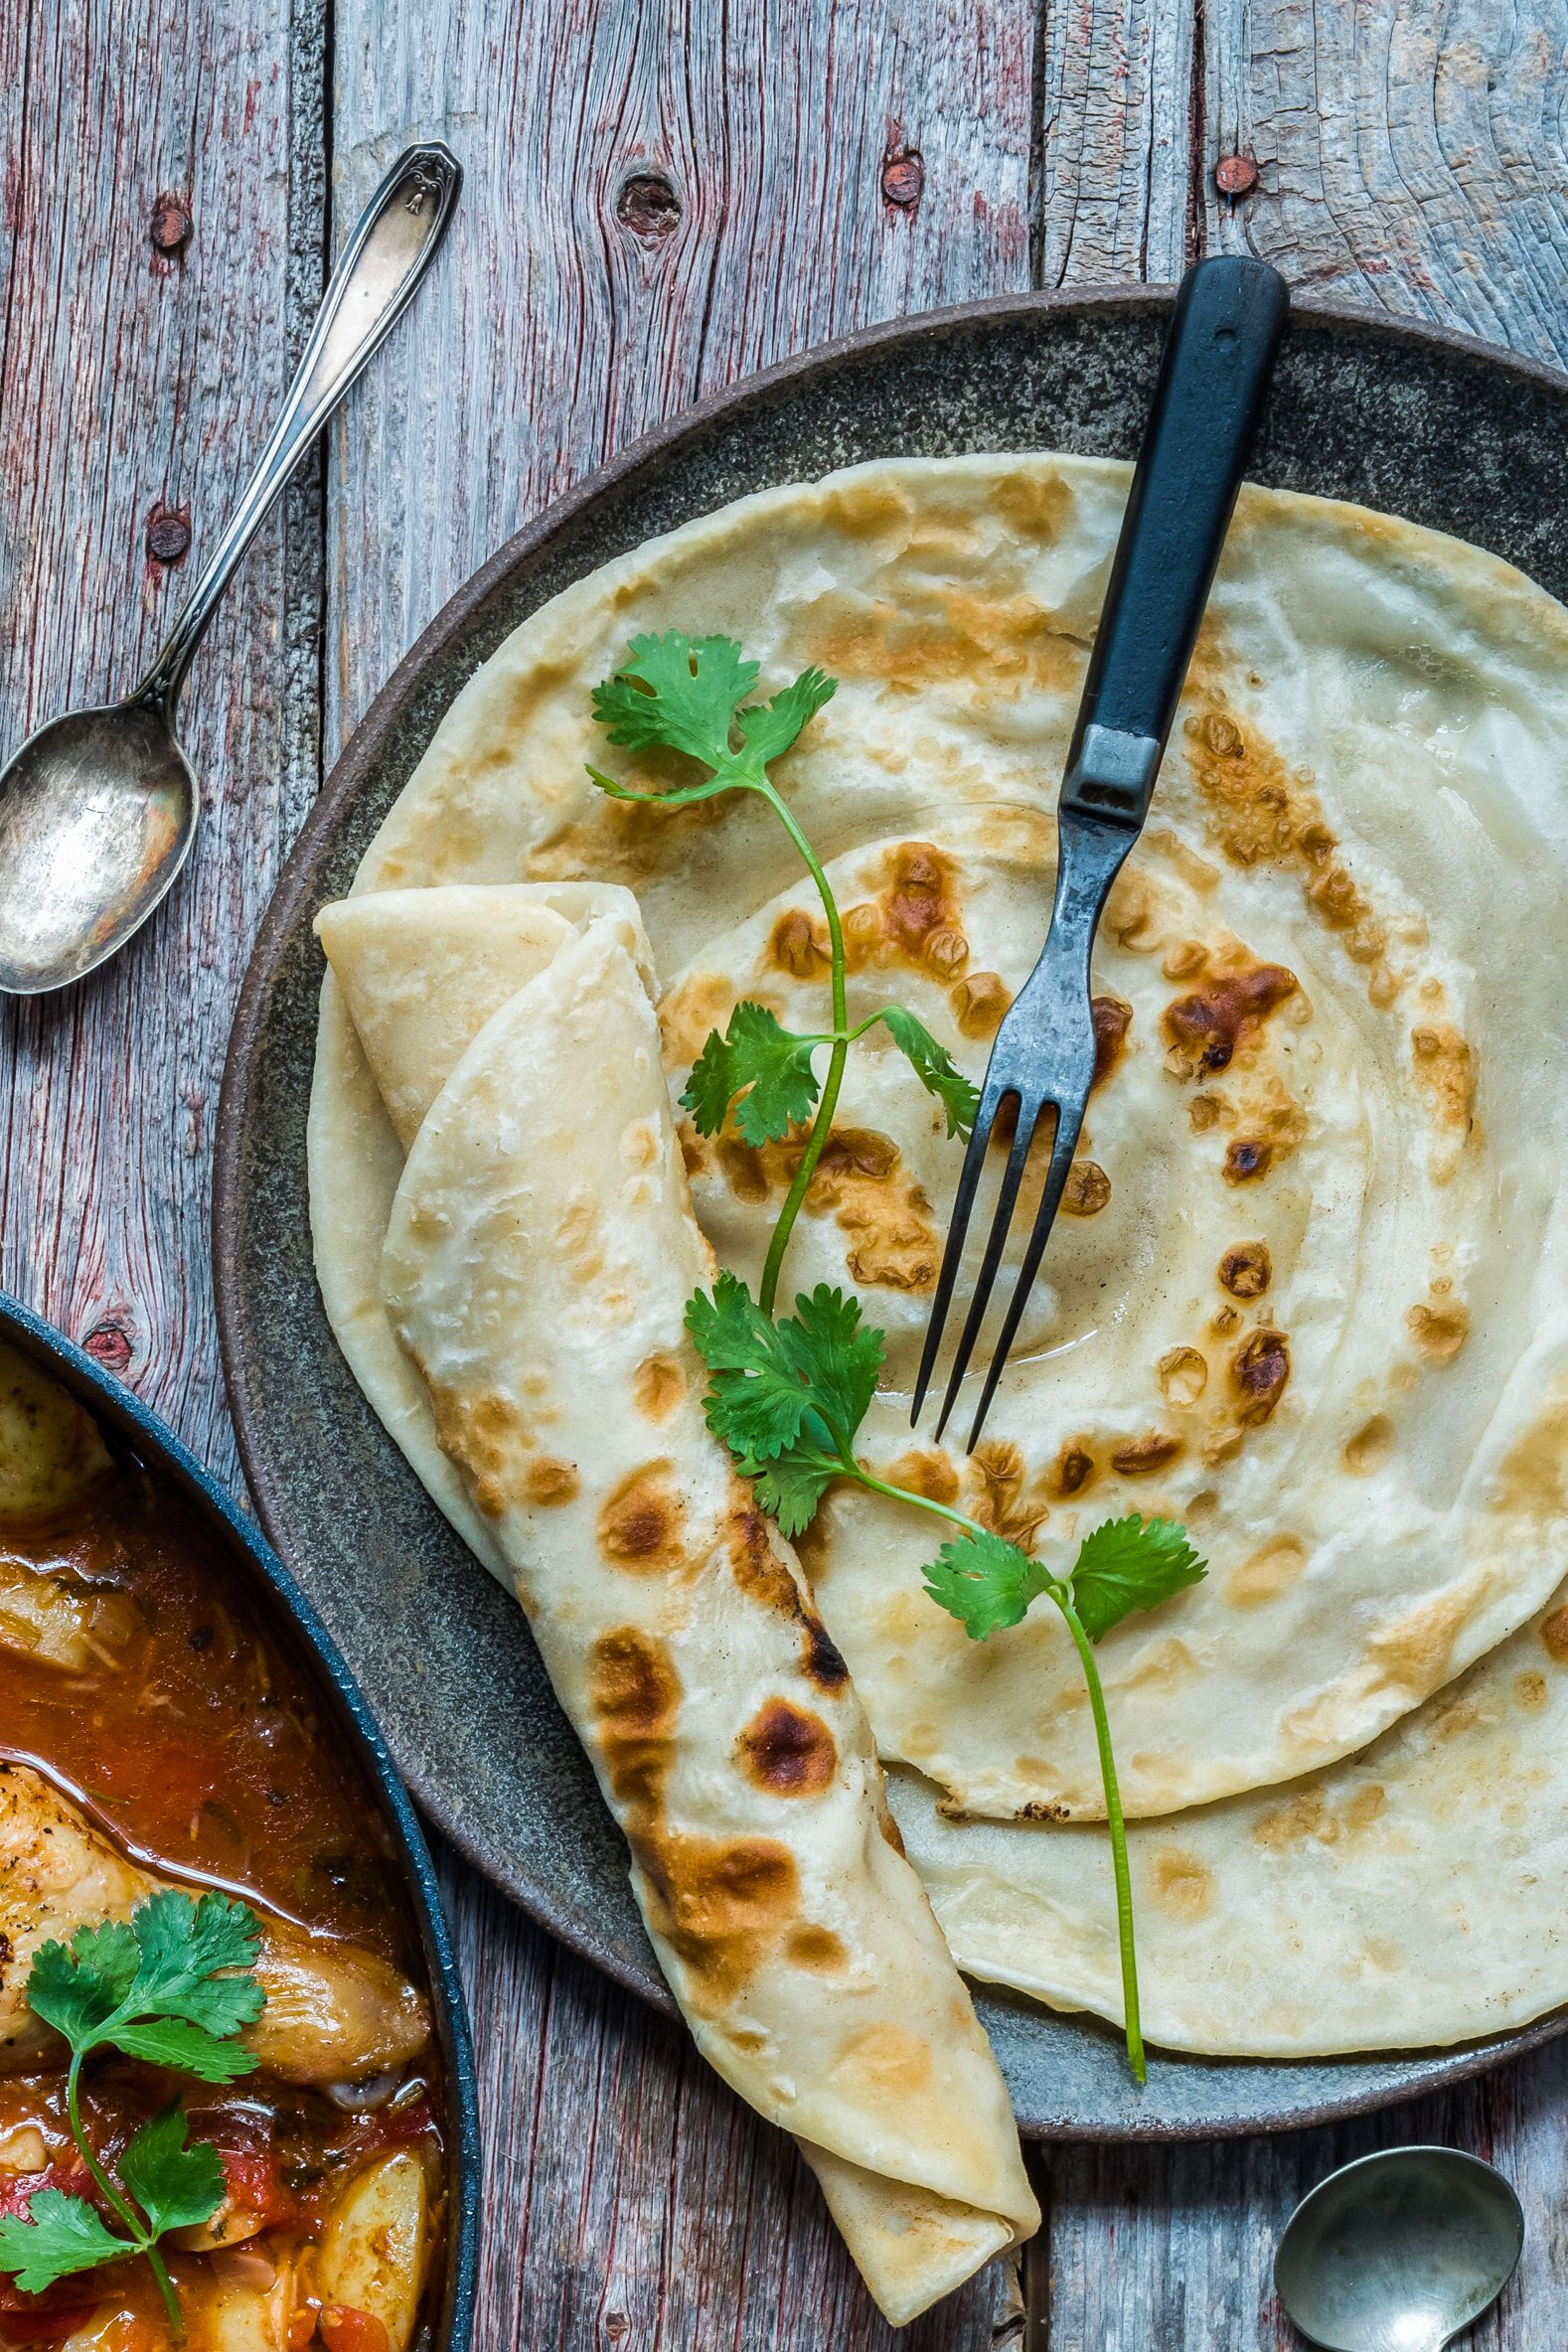 Kenyan-Style Chapati Bread (With images) | Chapati recipes ...